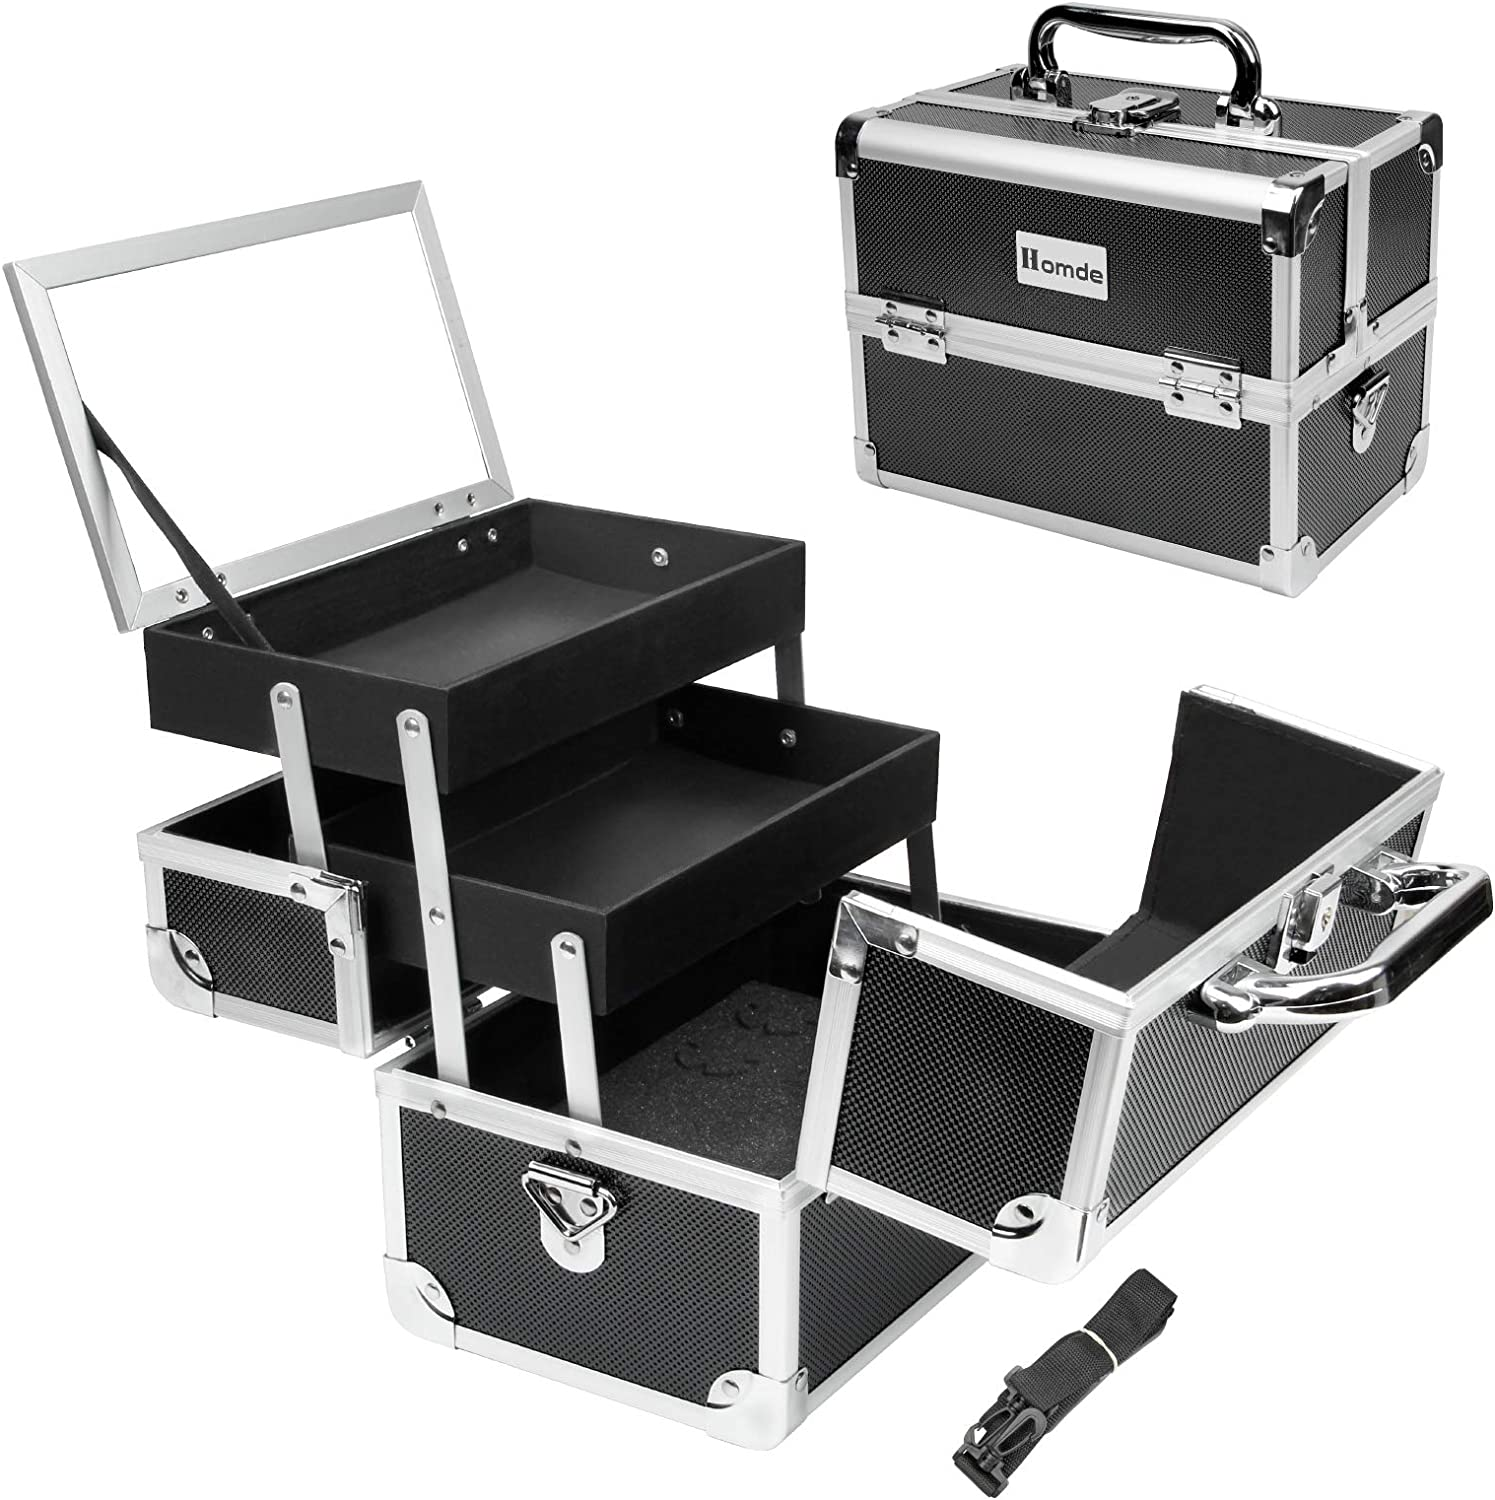 Homde Makeup sale Train Max 79% OFF Case Small Travel with Organizer Box Cosmetic